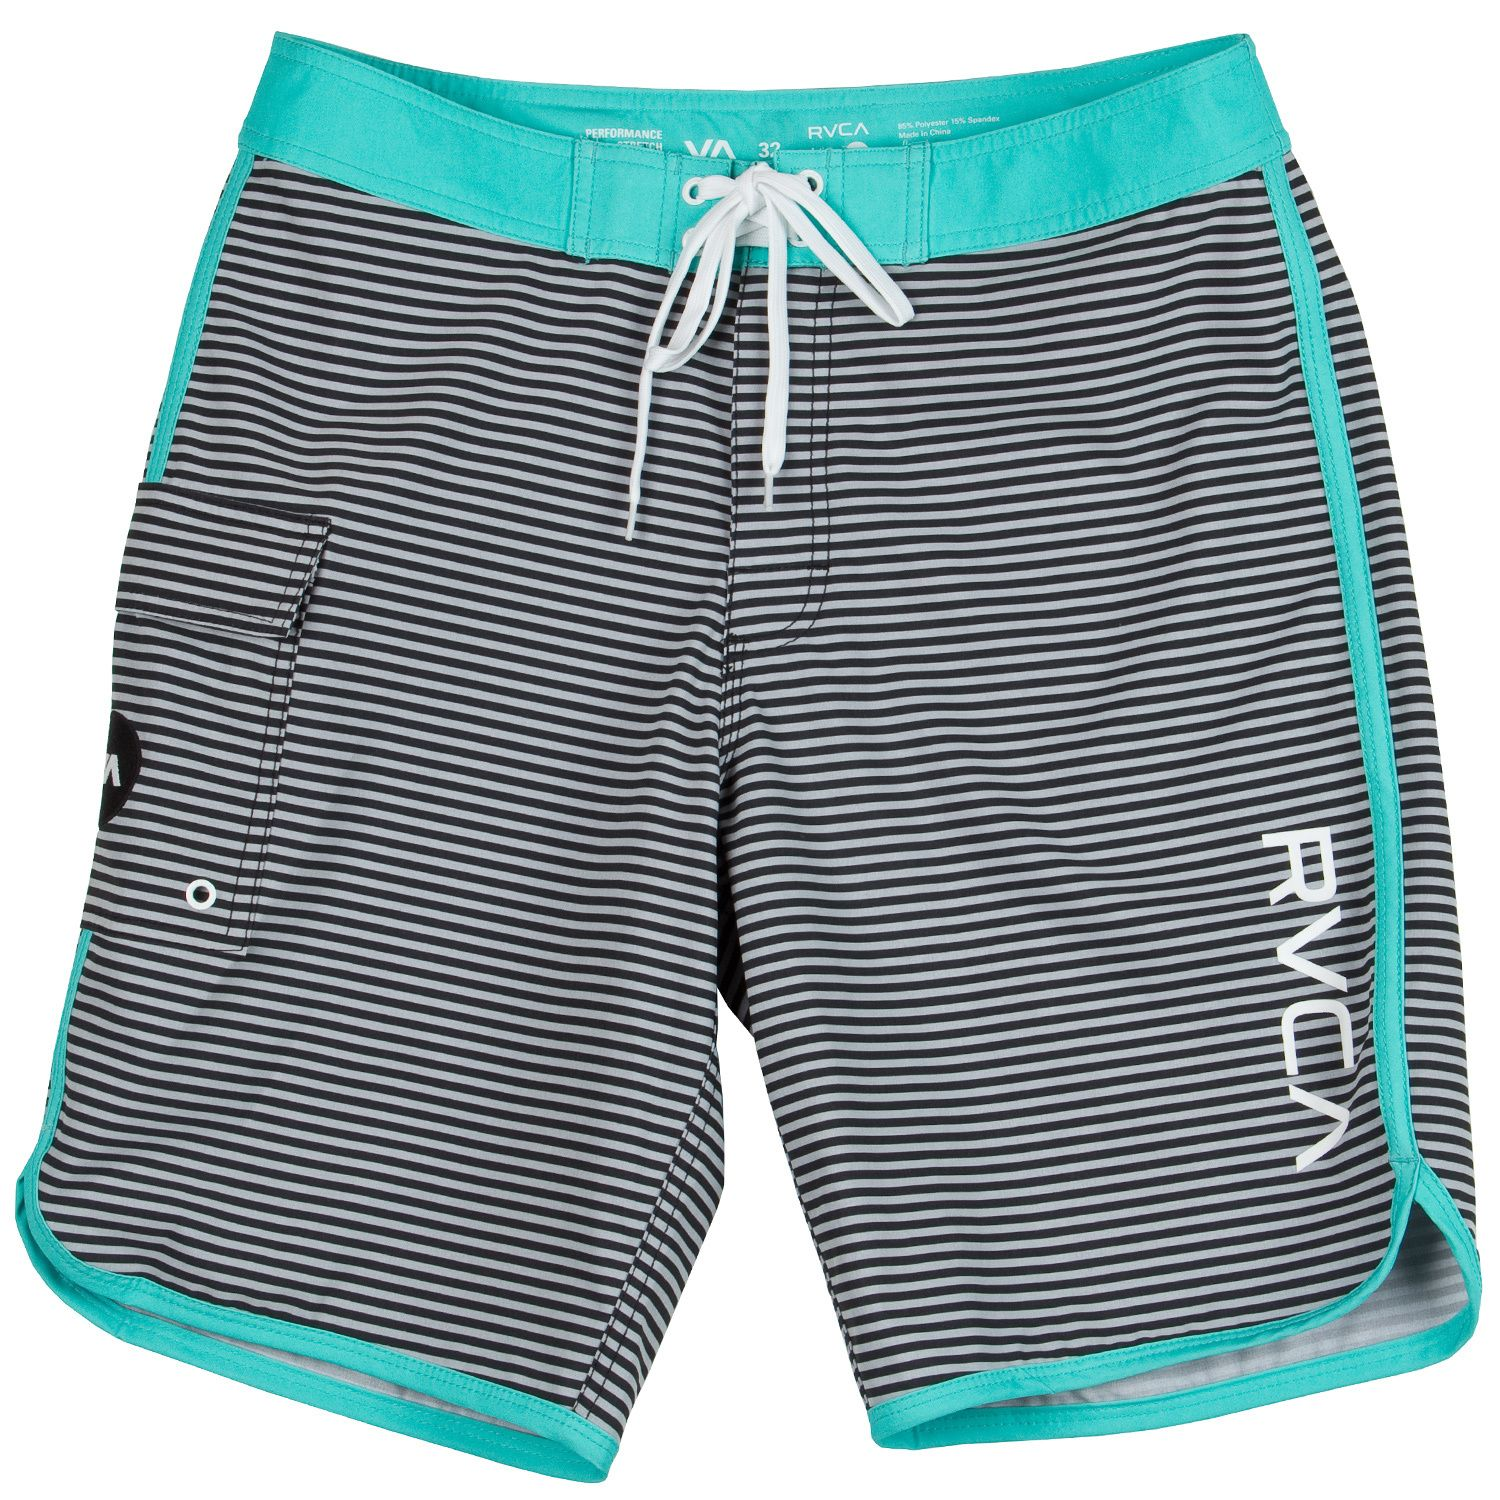 RVCA Mens Repeater Boardshort Men s Swim Trunks 149f9c6db58